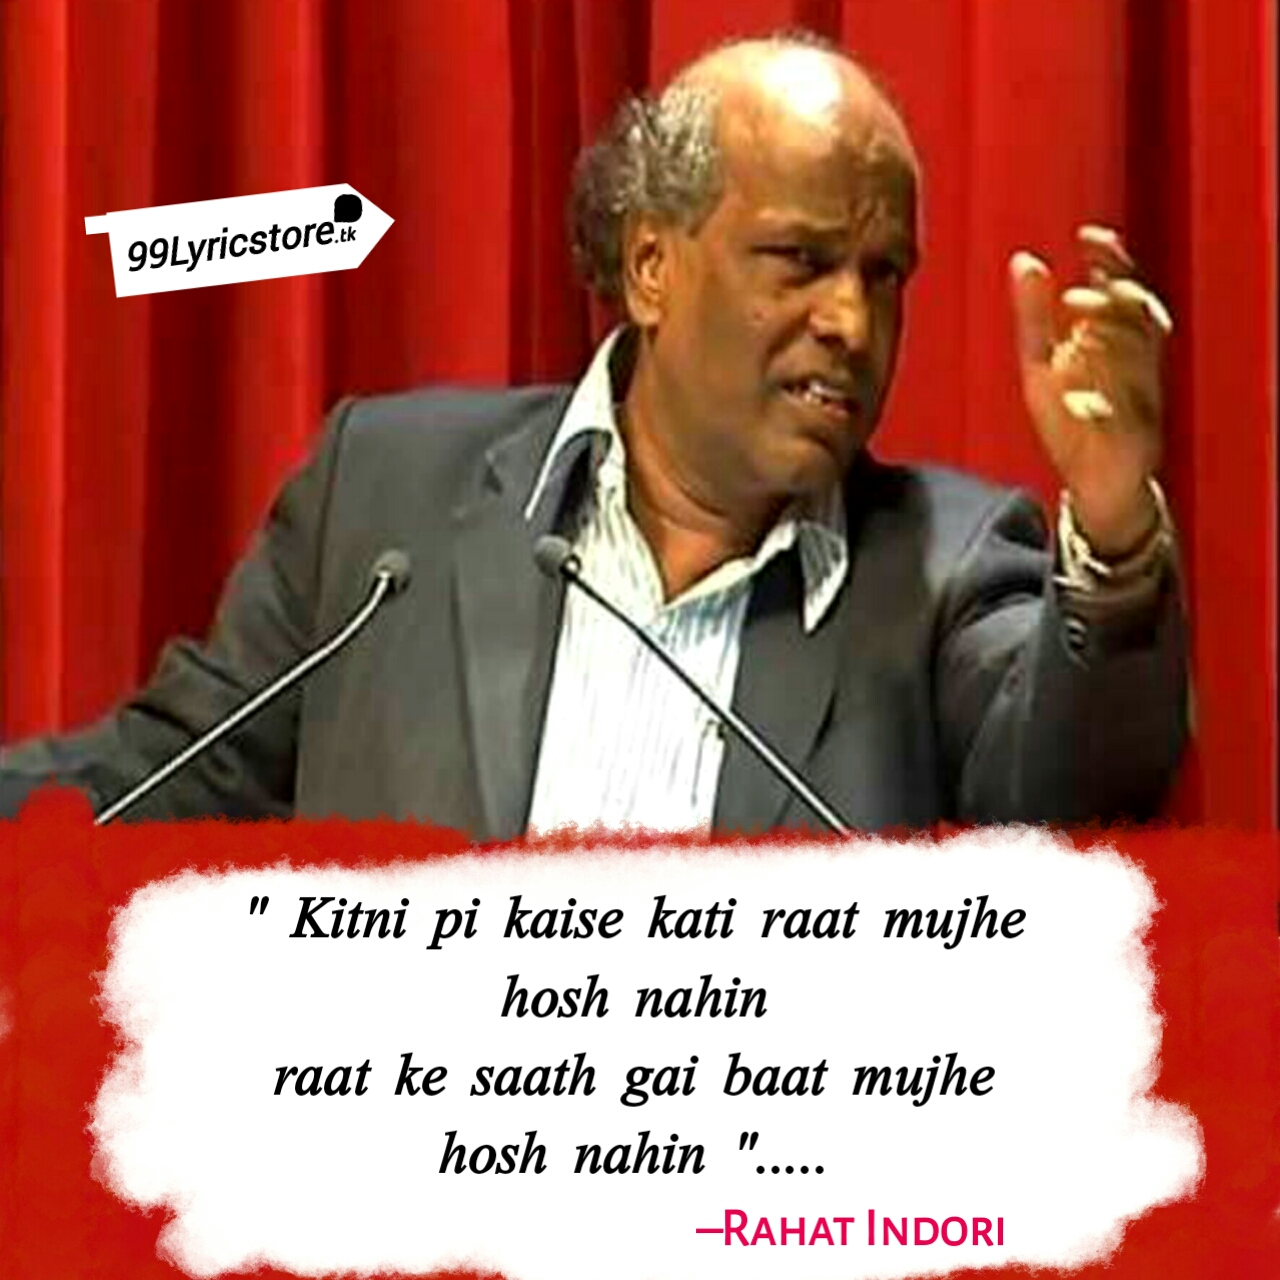 Kitni Pi Kaise Kati Raat Mujhe Hosh Nahin – Rahat Indori | Ghazal Poetry, Kitni Pi Kaise Kati Raat Mujhe Hosh Nahin Lyrics, Rahat Indori Ghazal, Rahat Indori poetry, Rahat Indori shayari, shayri, Rahat Indori mushaira, Rahat Indori all Ghazal in hinglish, Hindi fornt, Rahat Indori image download, कितनी पी कैसे कटी रात मुझे होश नहीं है रात के साथ गयी बात मुझे होश नहीं